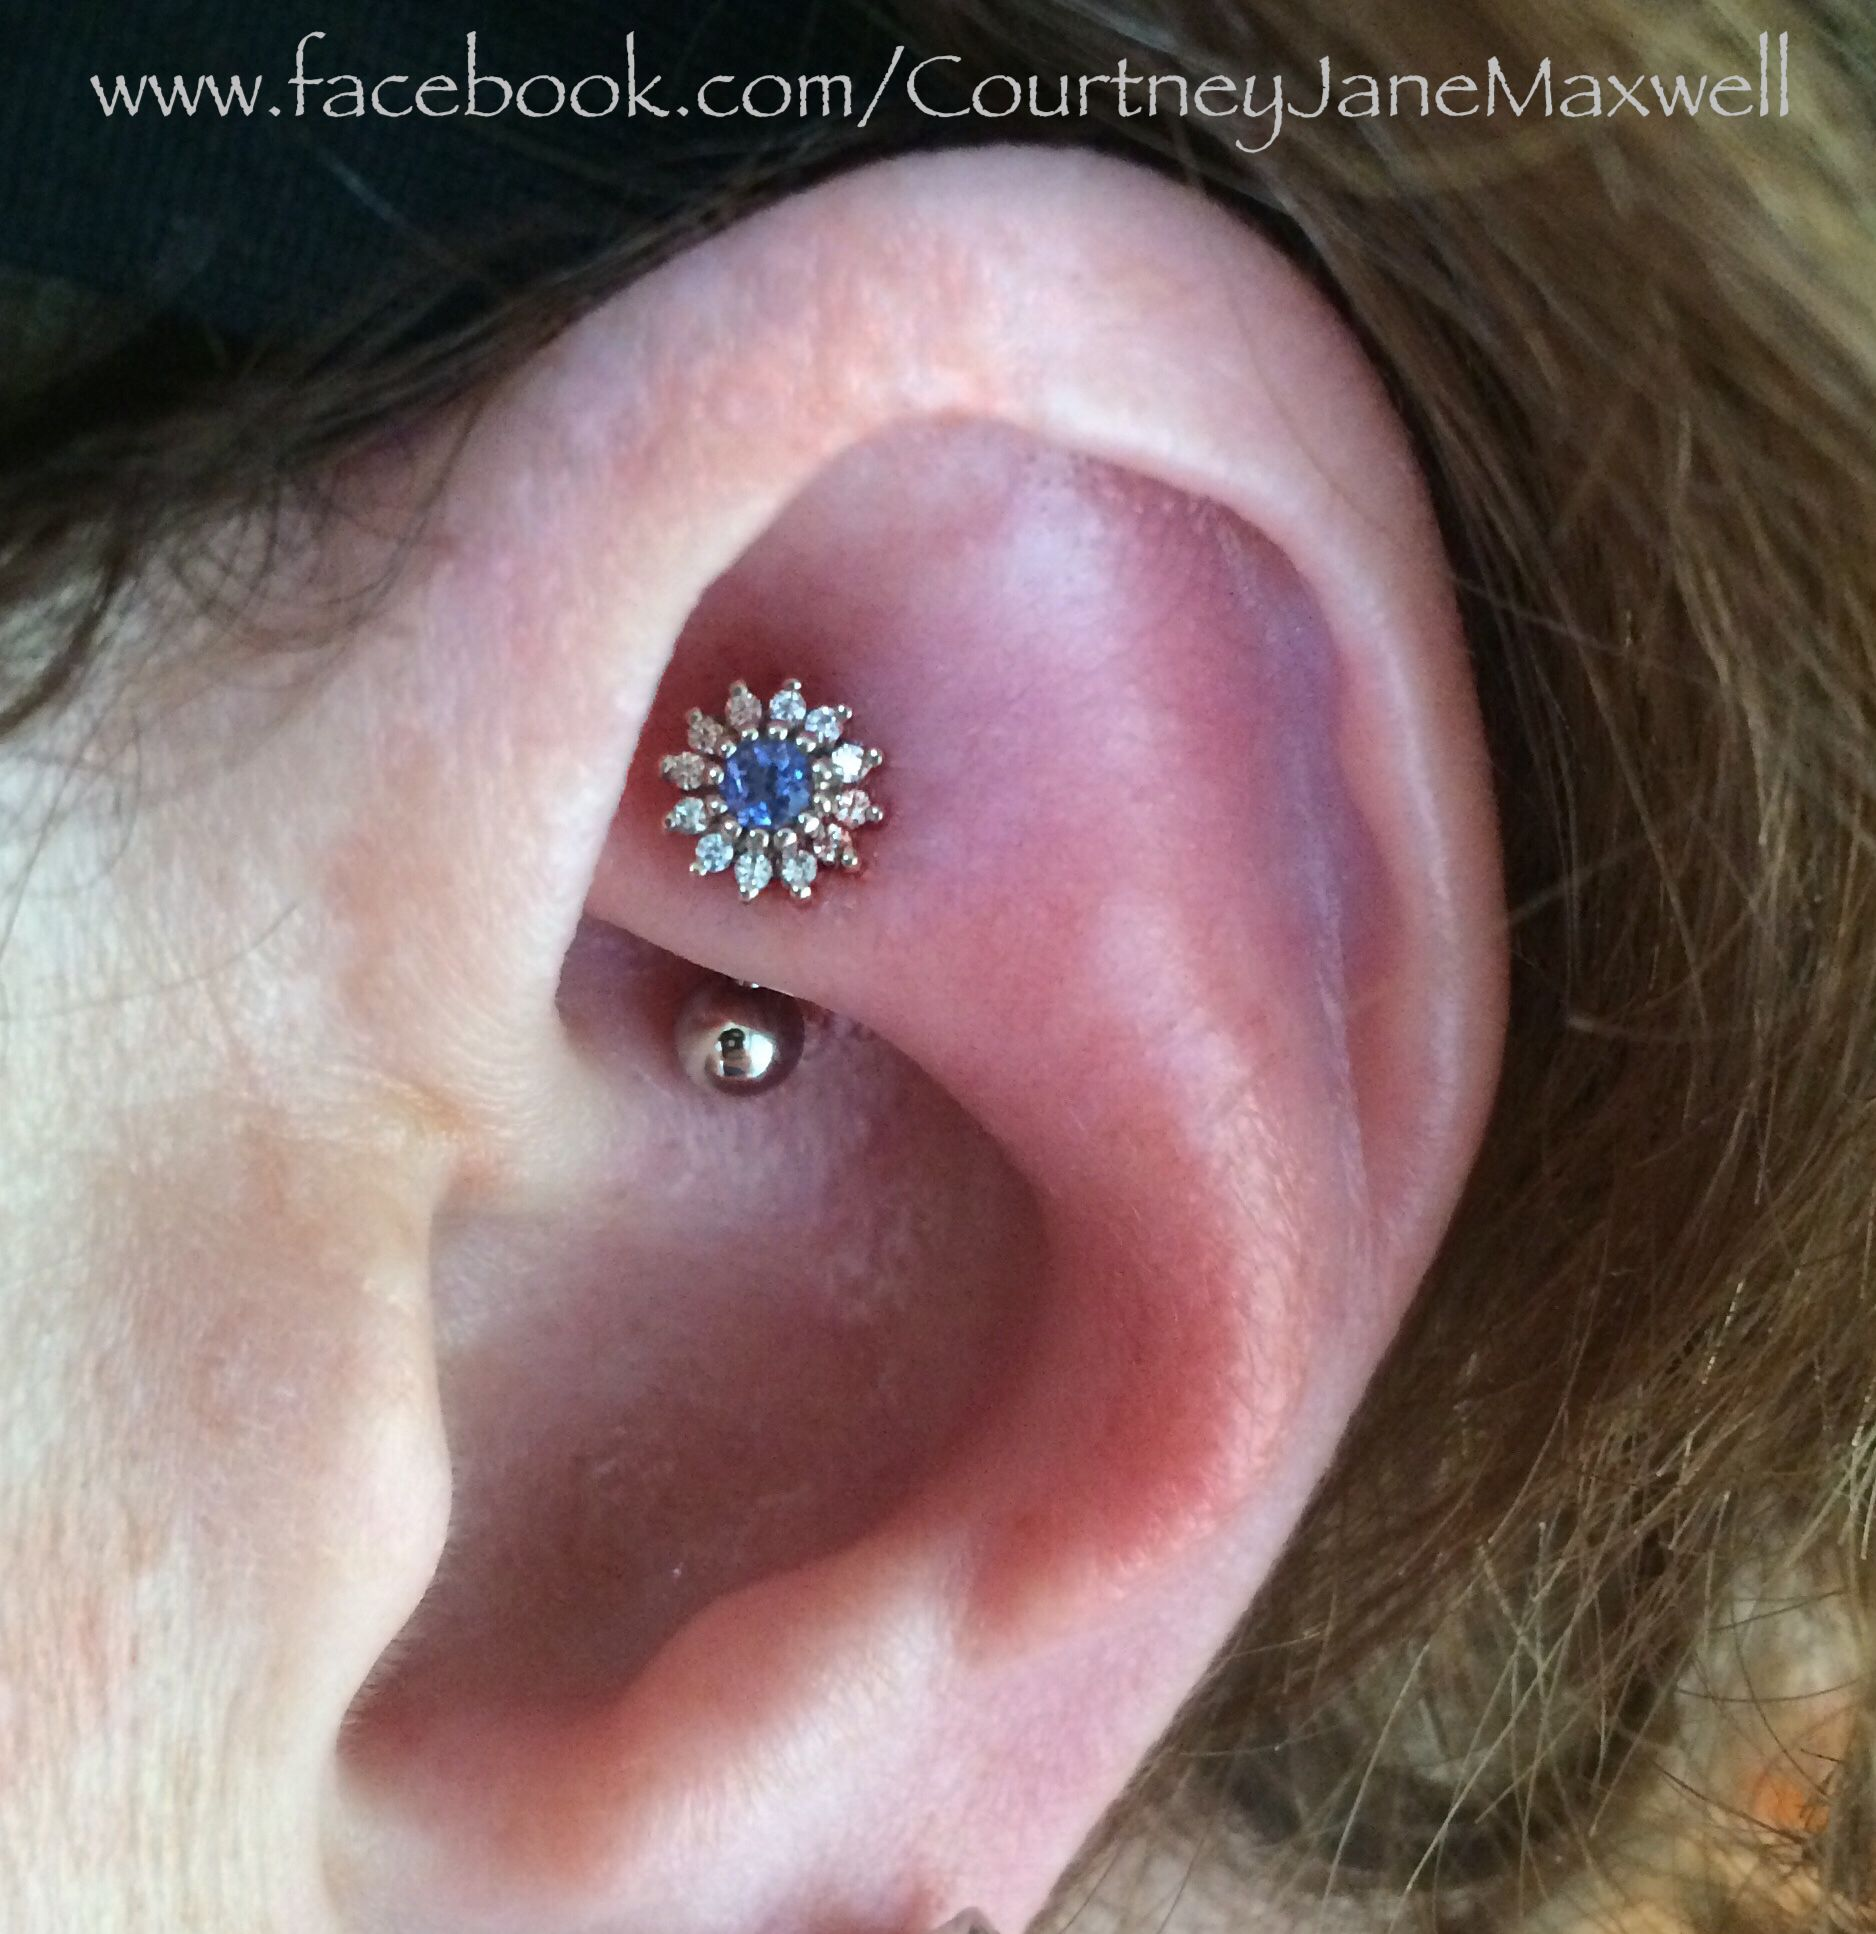 Rook piercing with insanely gorgeous Rose setting in 14k white